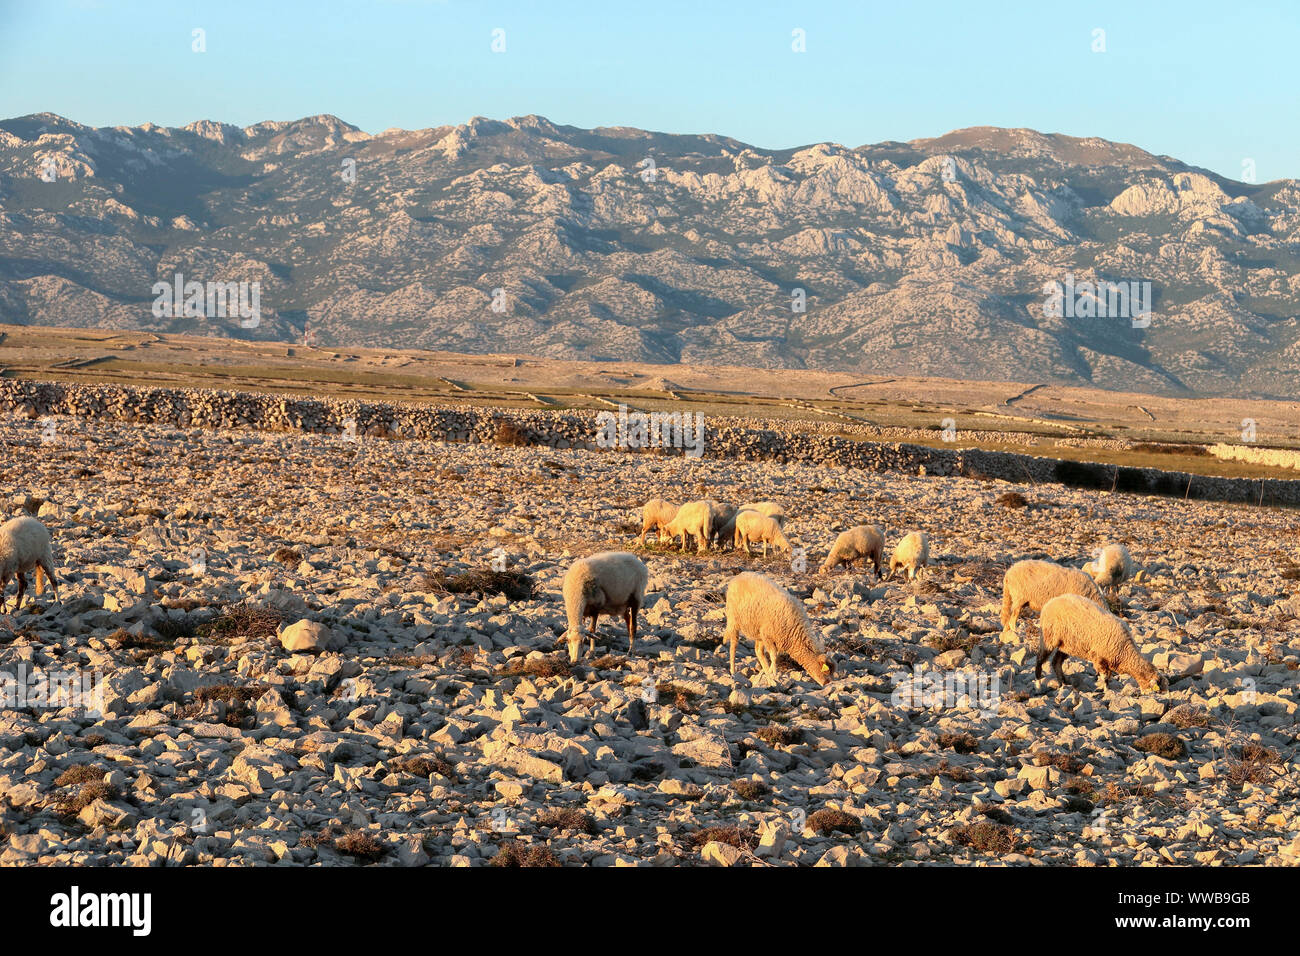 the sheep graze the grass in the gravelly terrain Stock Photo